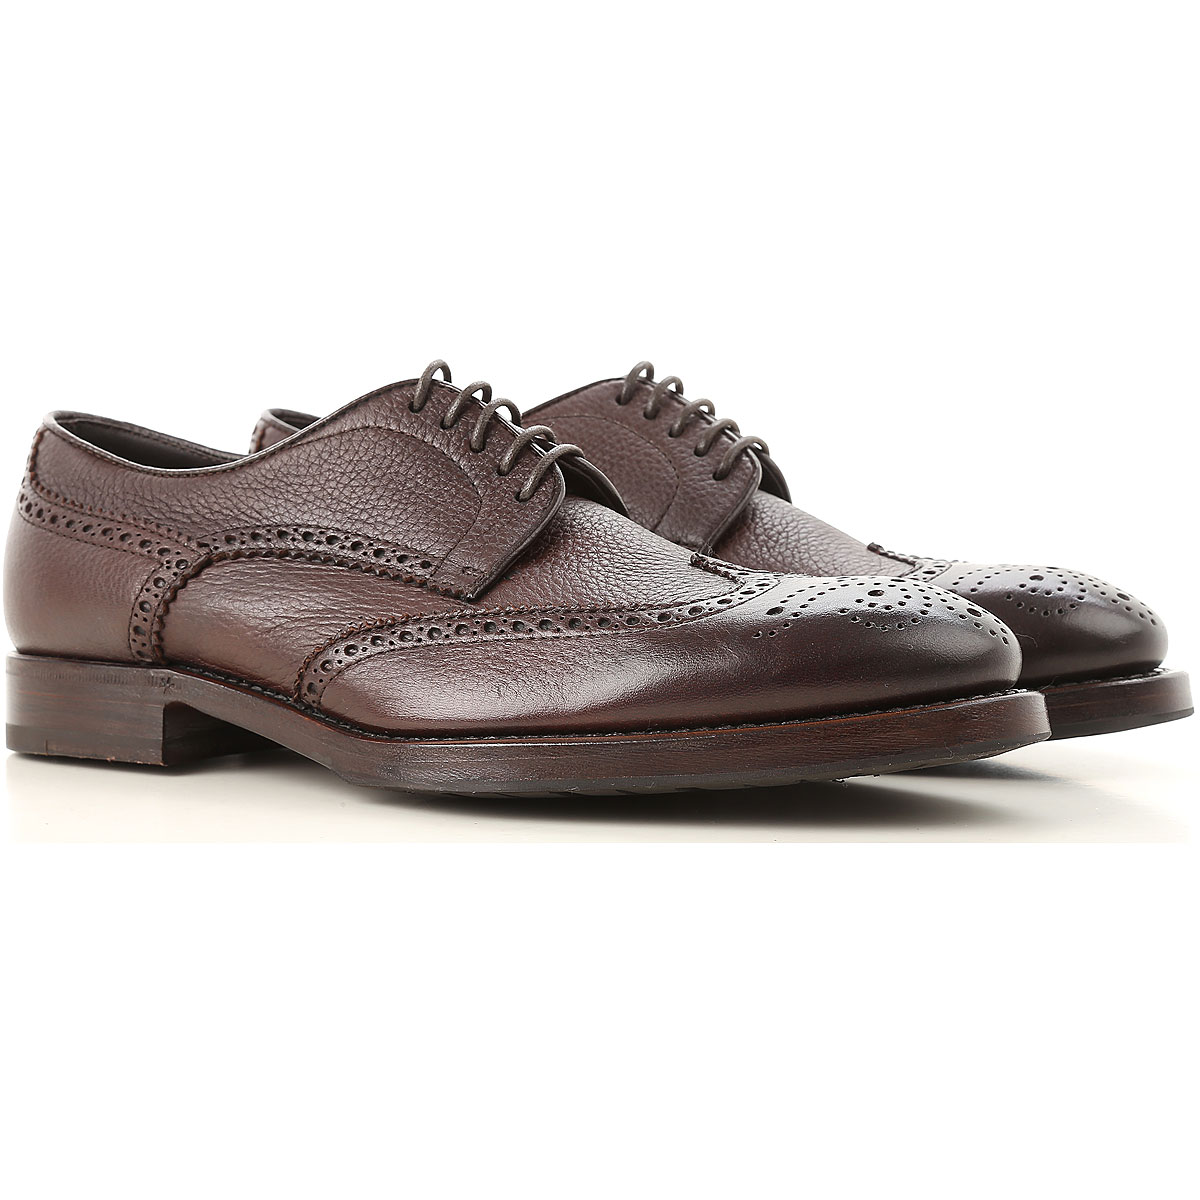 Henderson Lace Up Shoes for Men Oxfords Derbies and Brogues On Sale USA - GOOFASH